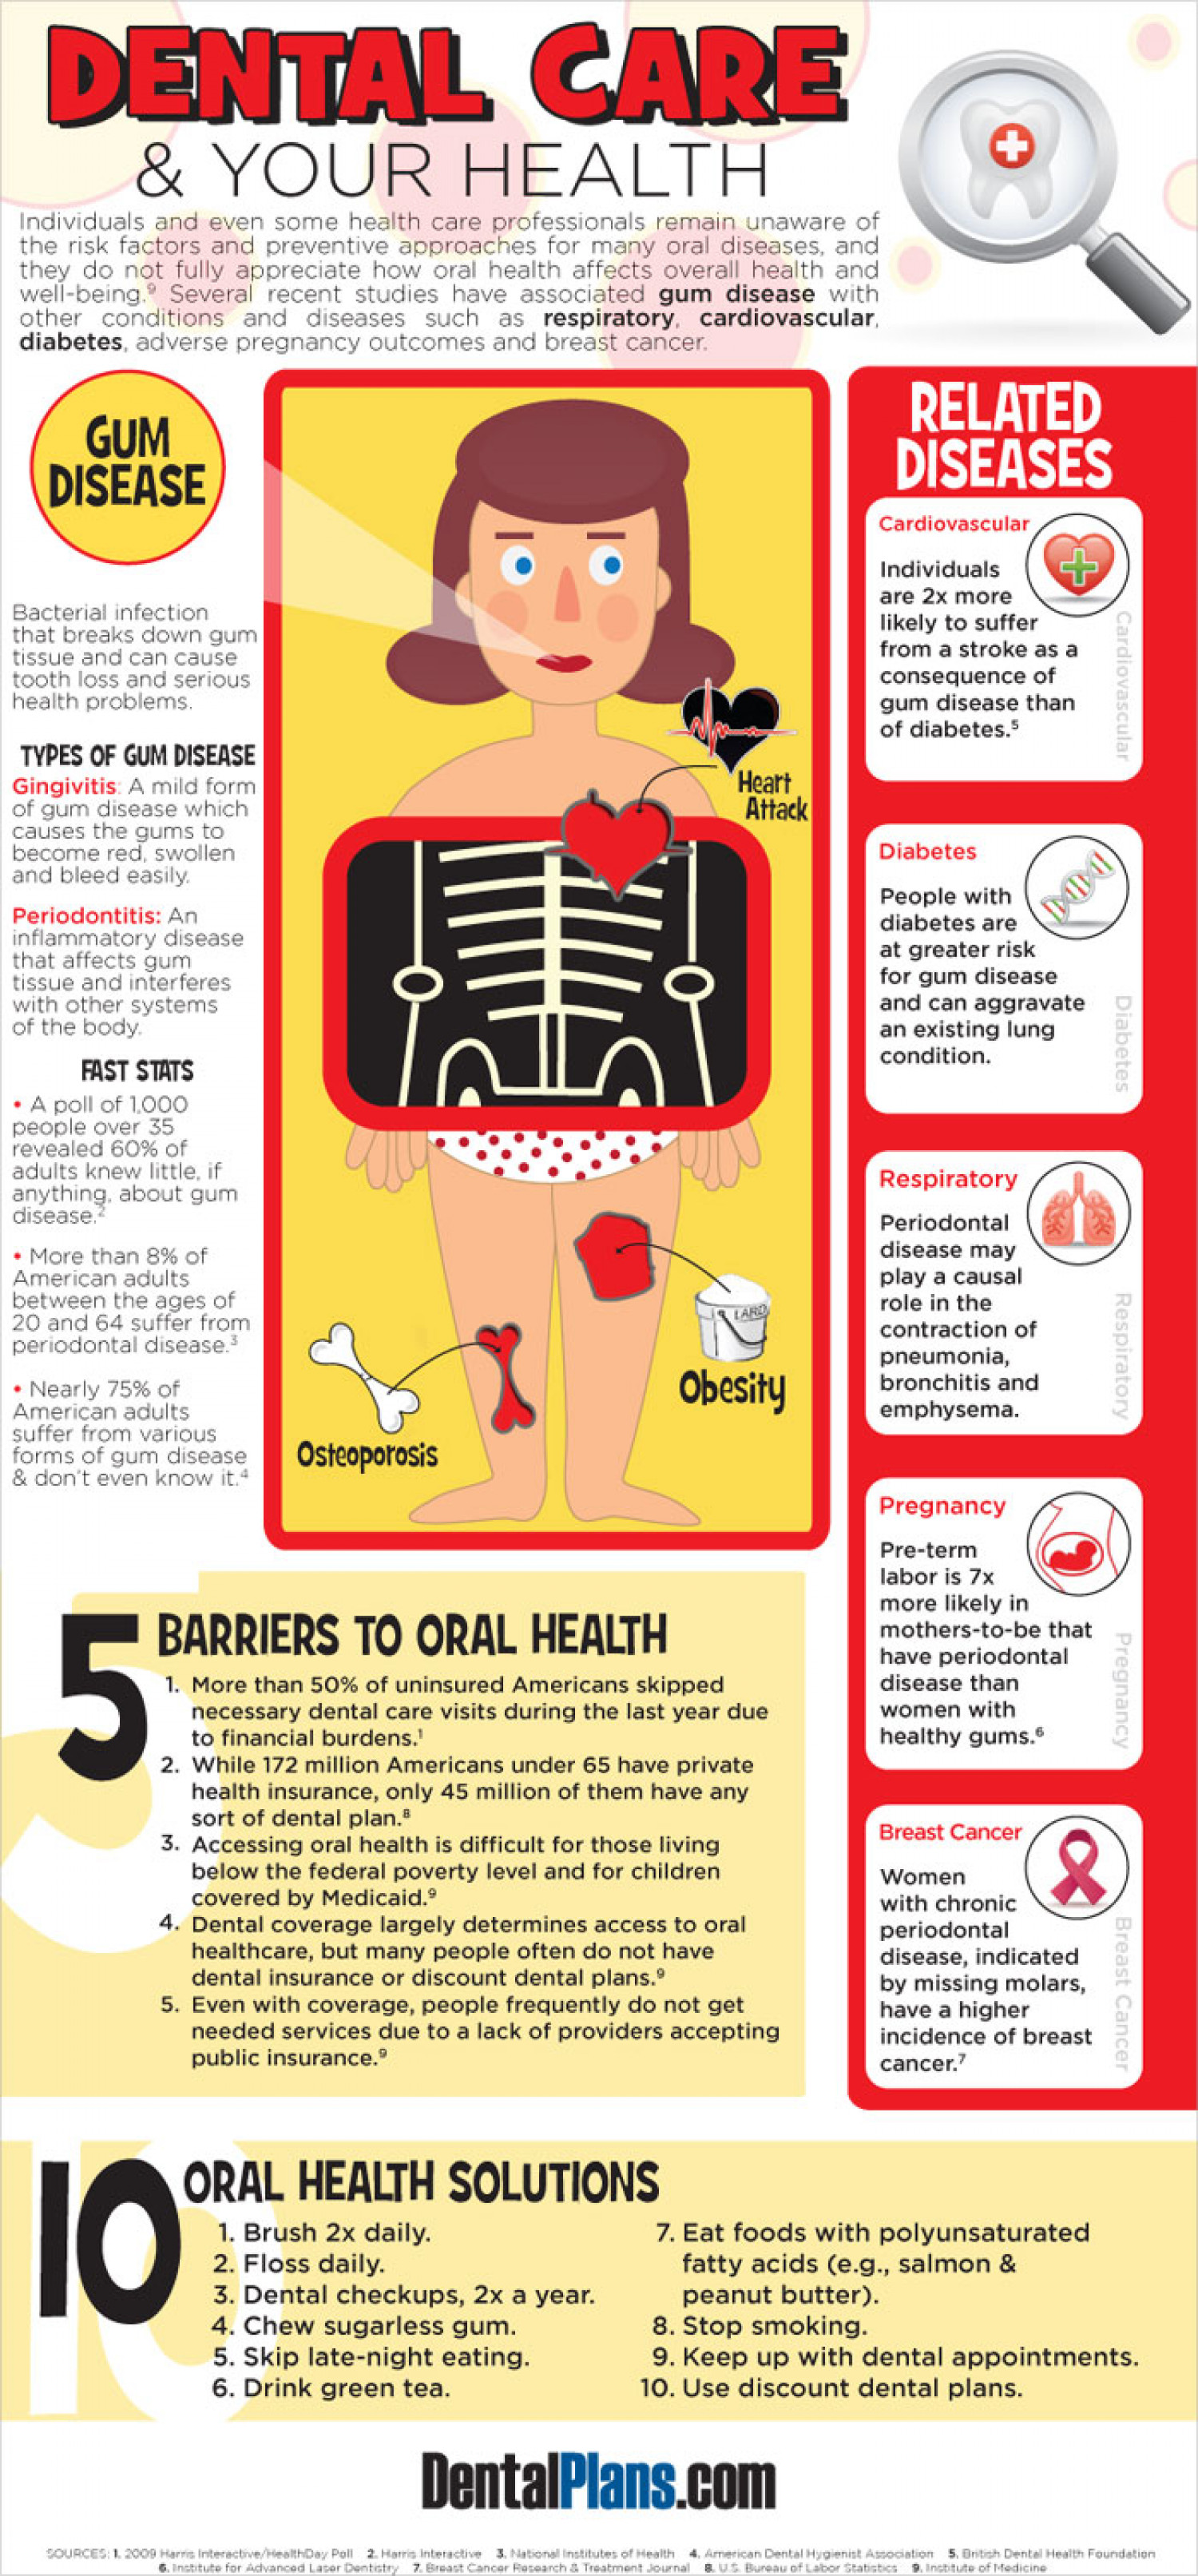 Dental Care & Your Health Infographic